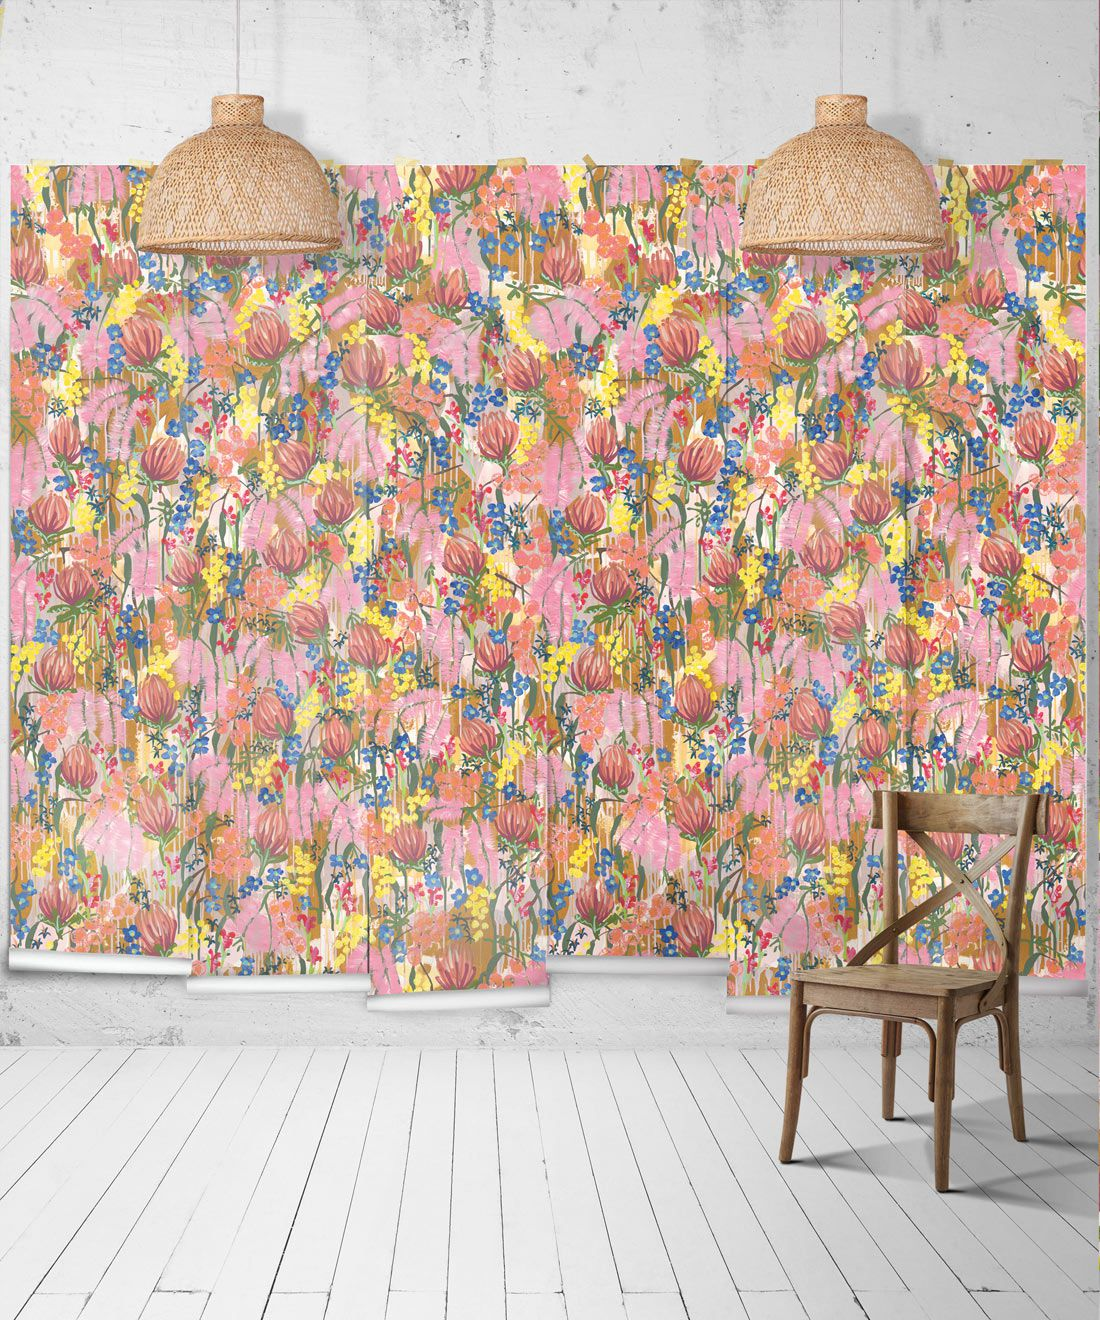 Acacia Wallpaper •Colourful Floral Wallpaper • Tiff Manuell • Abstract Expressionist Wallpaper • Wide Insitu